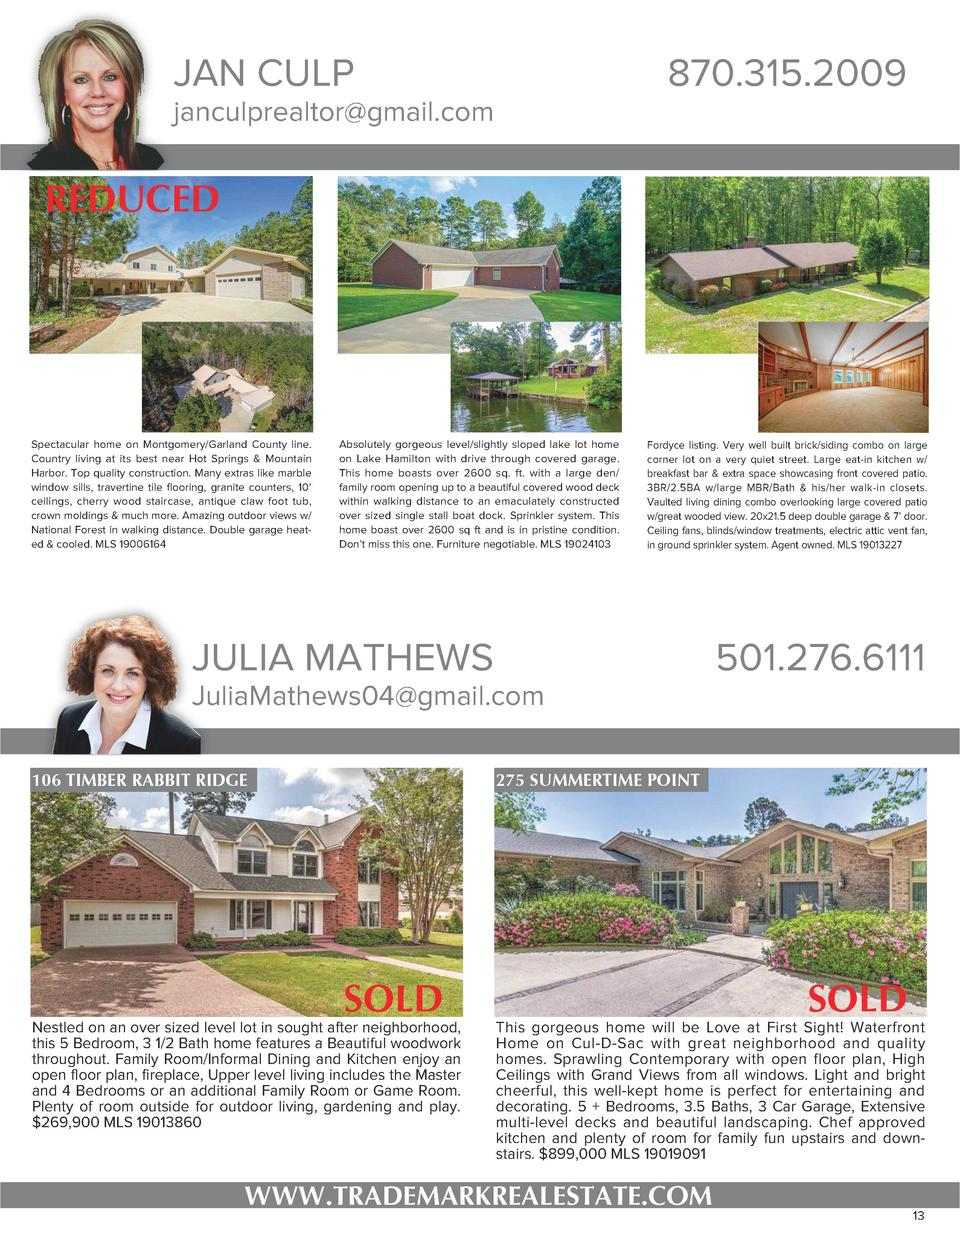 JAN CULP  870.315.2009  janculprealtor gmail.com  REDUCED  Spectacular home on Montgomery Garland County line. Country liv...